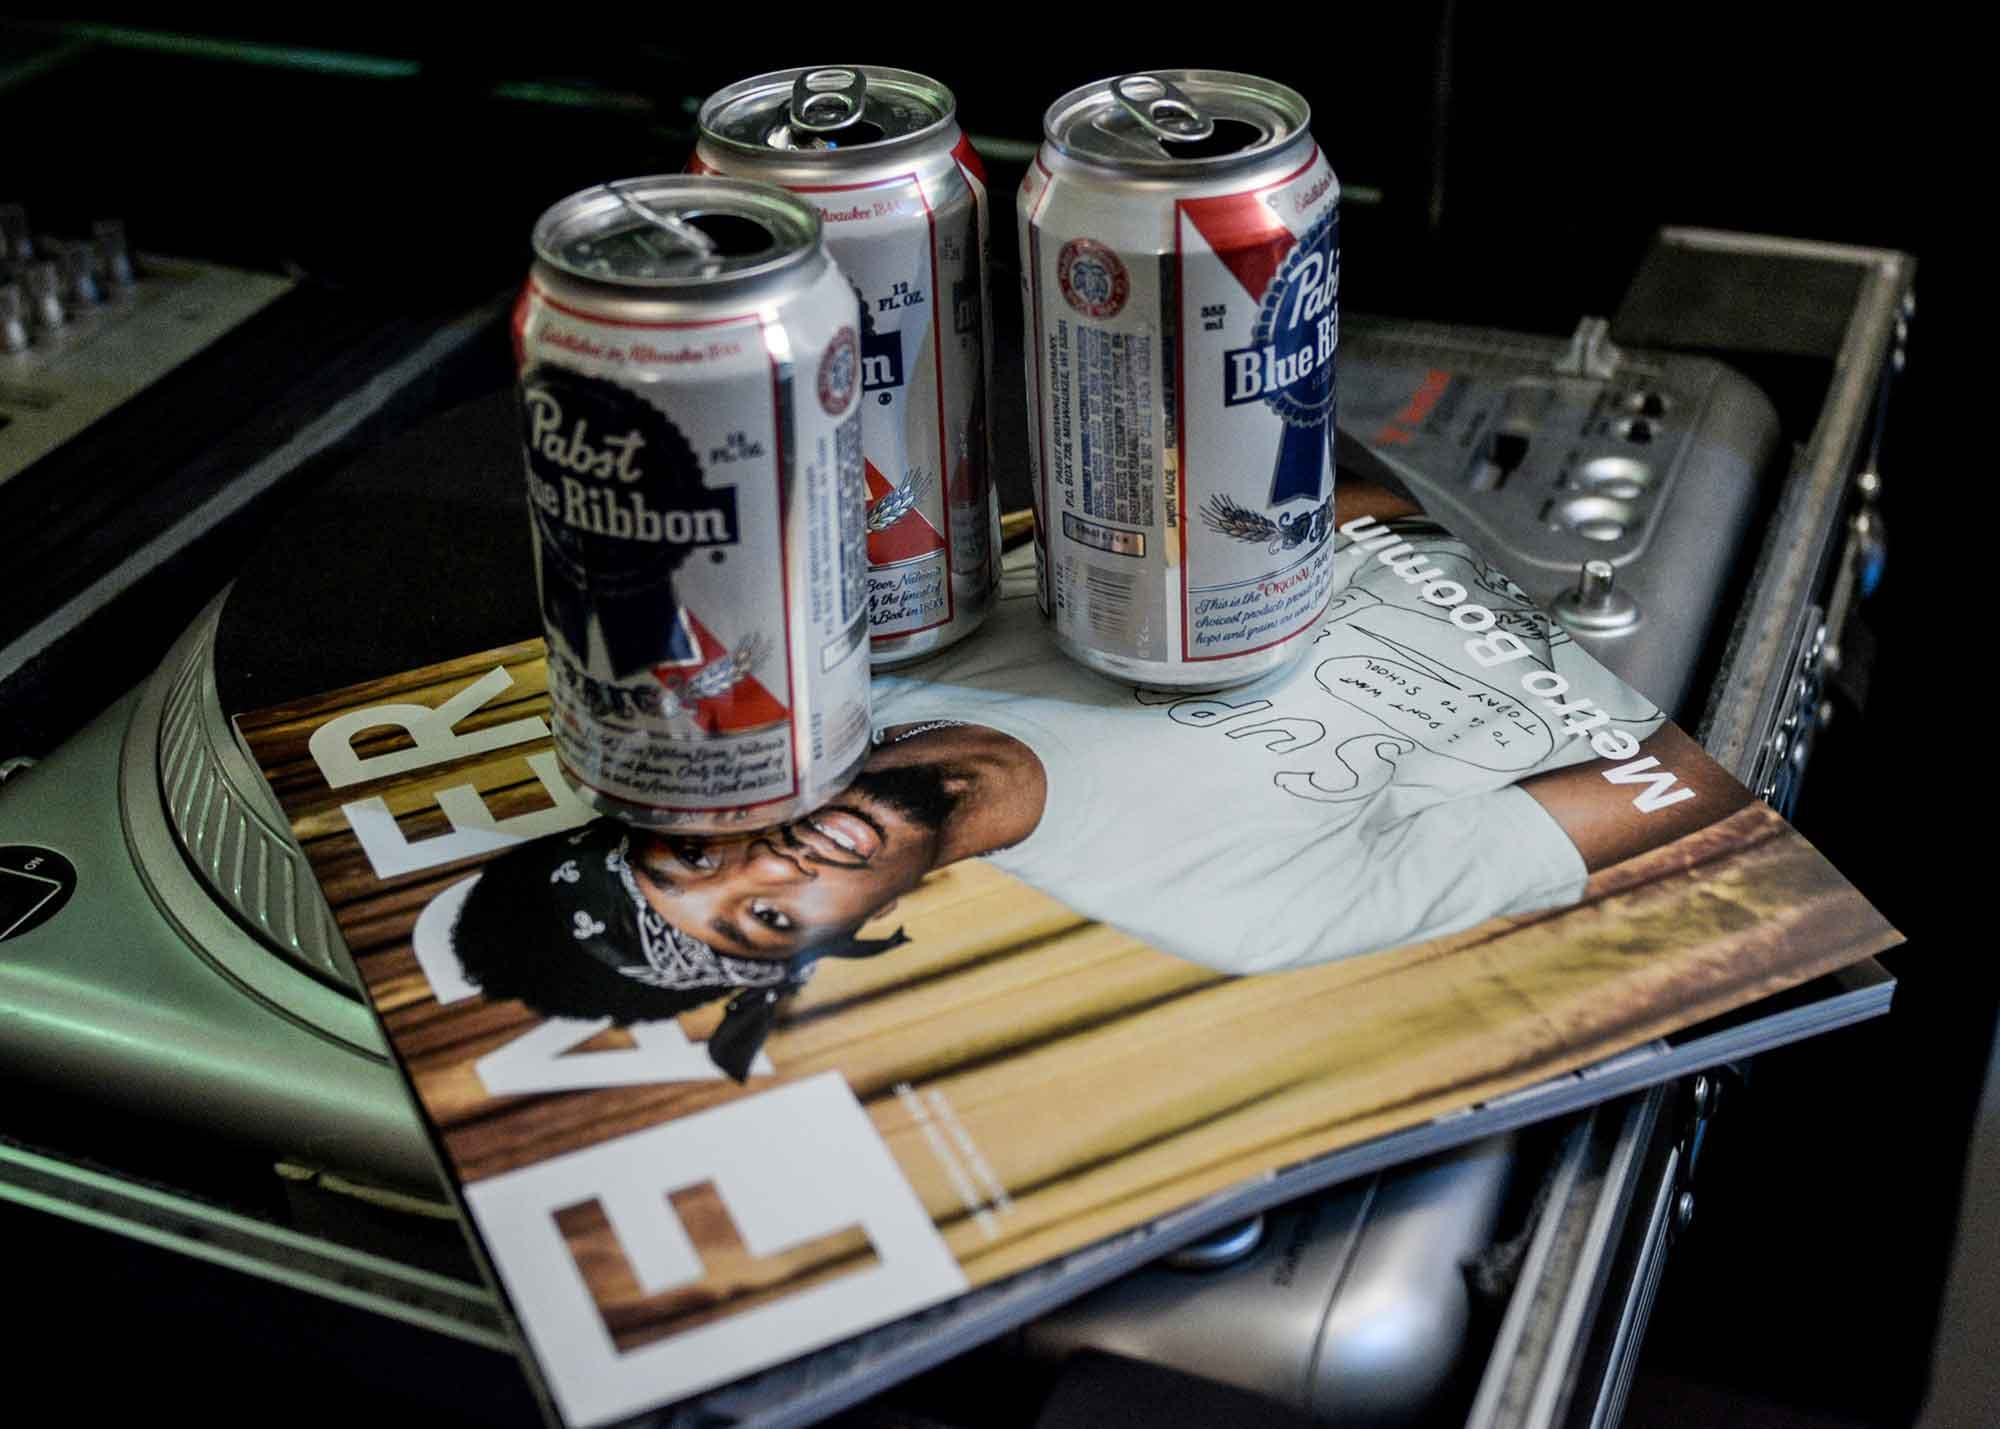 PBR cans sitting on top of a record case